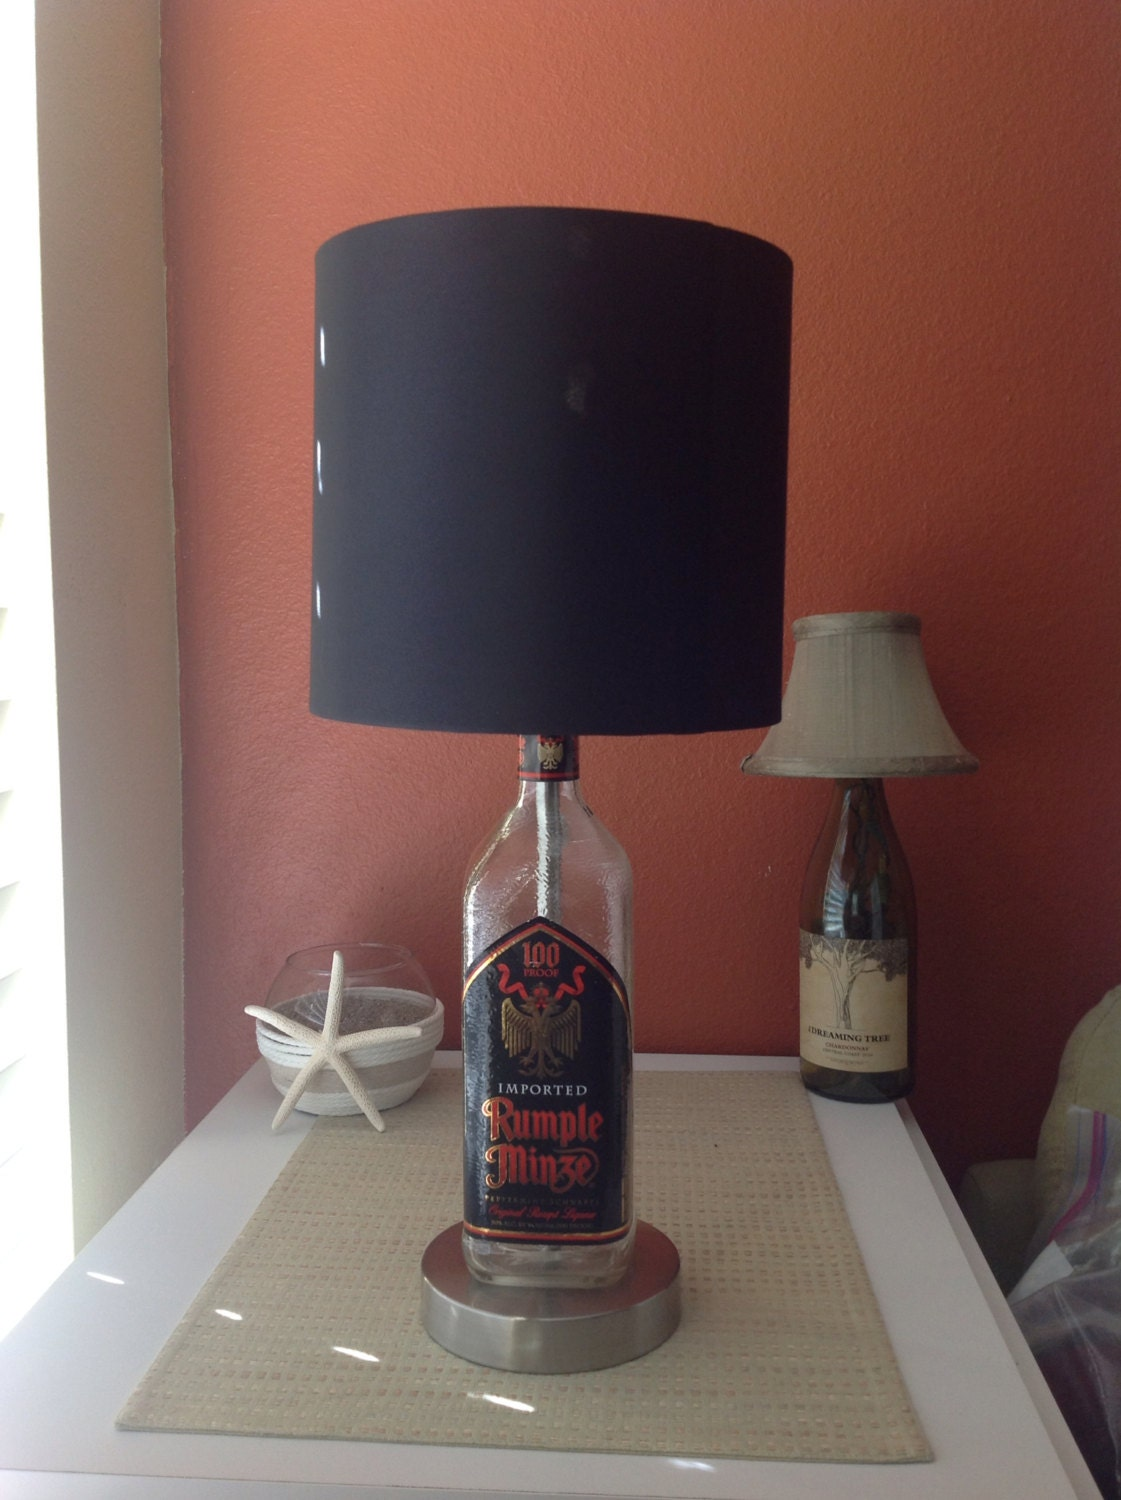 Rumple Minze Liquor Bottle Lamp With Brushed Silver Base